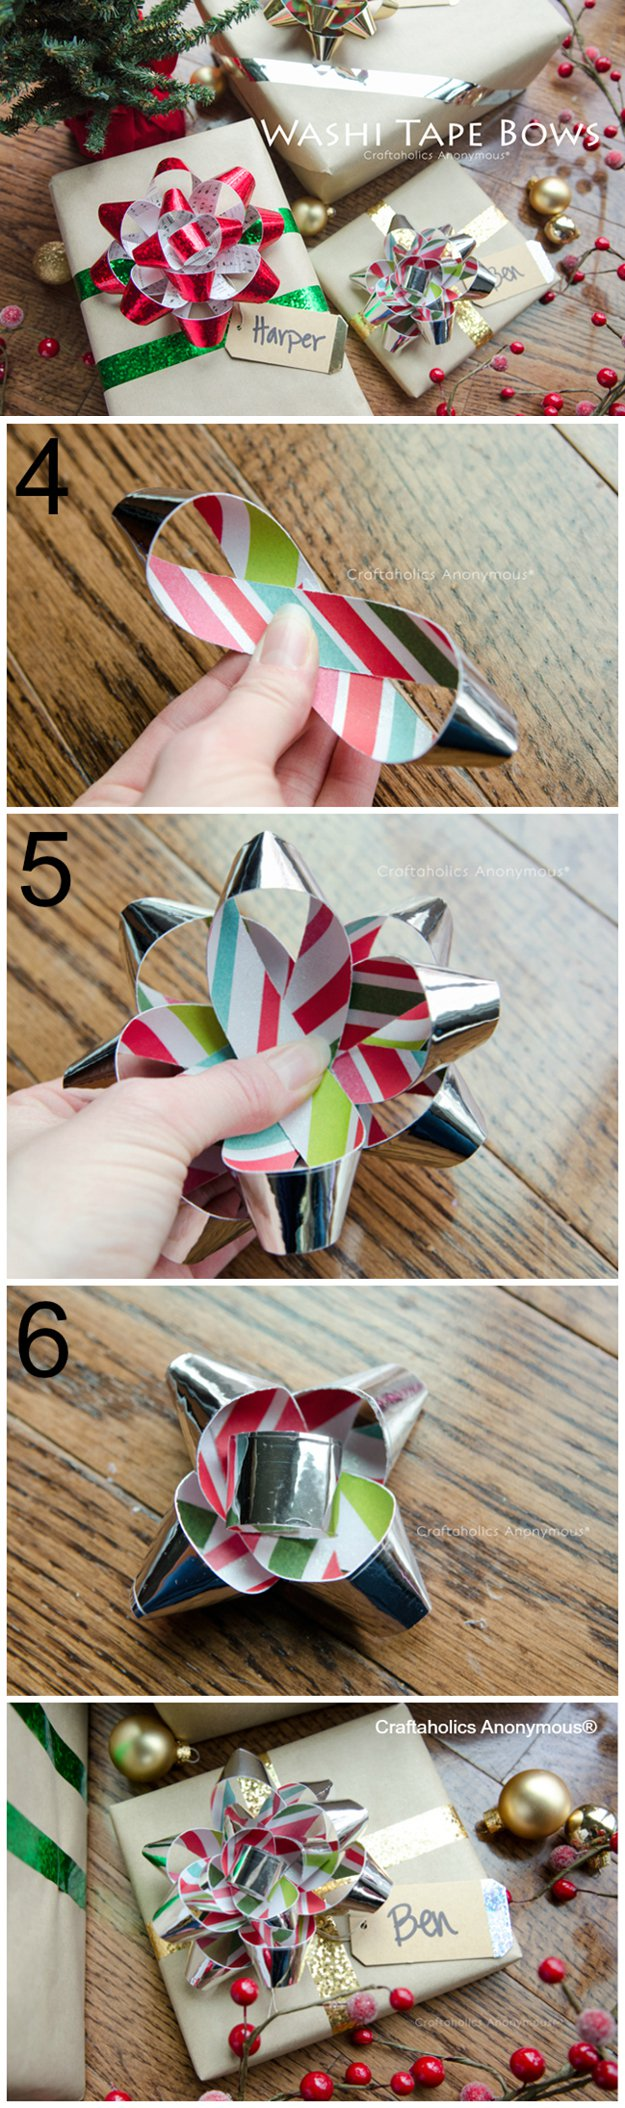 Washi Tape Crafts - Washi Tape Gift Bows Tutorial - Wall Art, Frames, Cards, Pencils, Room Decor and DIY Gifts, Back To School Supplies - Creative, Fun Craft Ideas for Teens, Tweens and Teenagers - Step by Step Tutorials and Instructions http://diyprojectsforteens.com/washi-tape-crafts